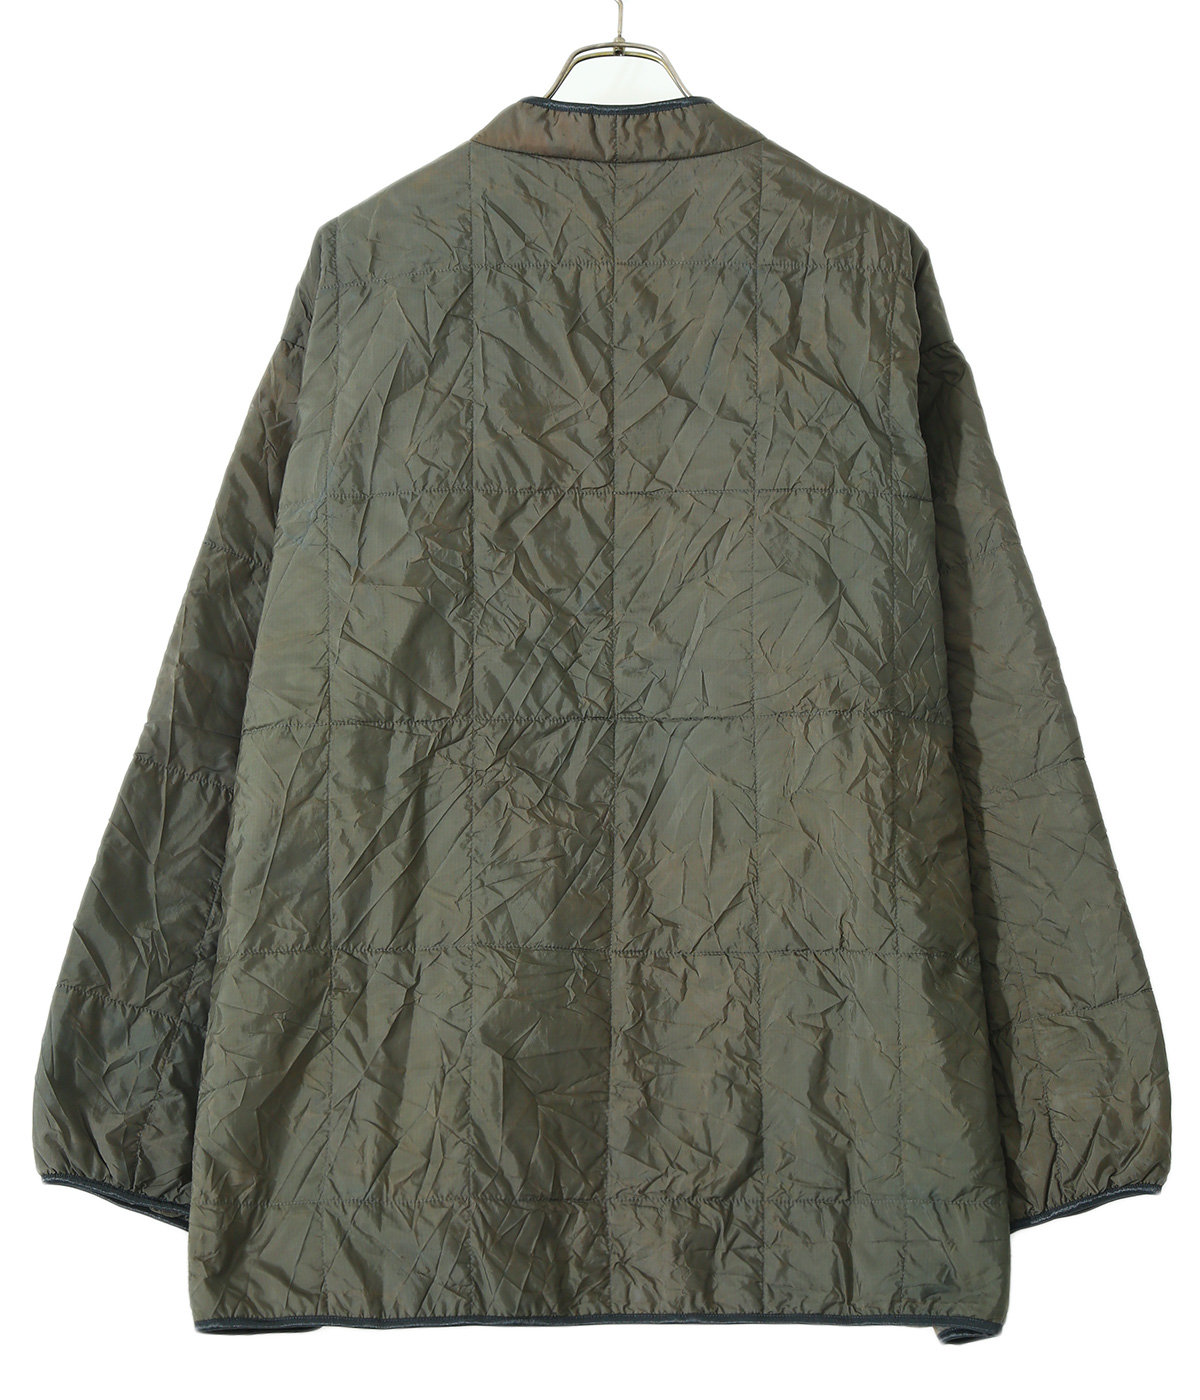 Piping Quilt Jacket - Nylon Ripstop / Uneven Dye